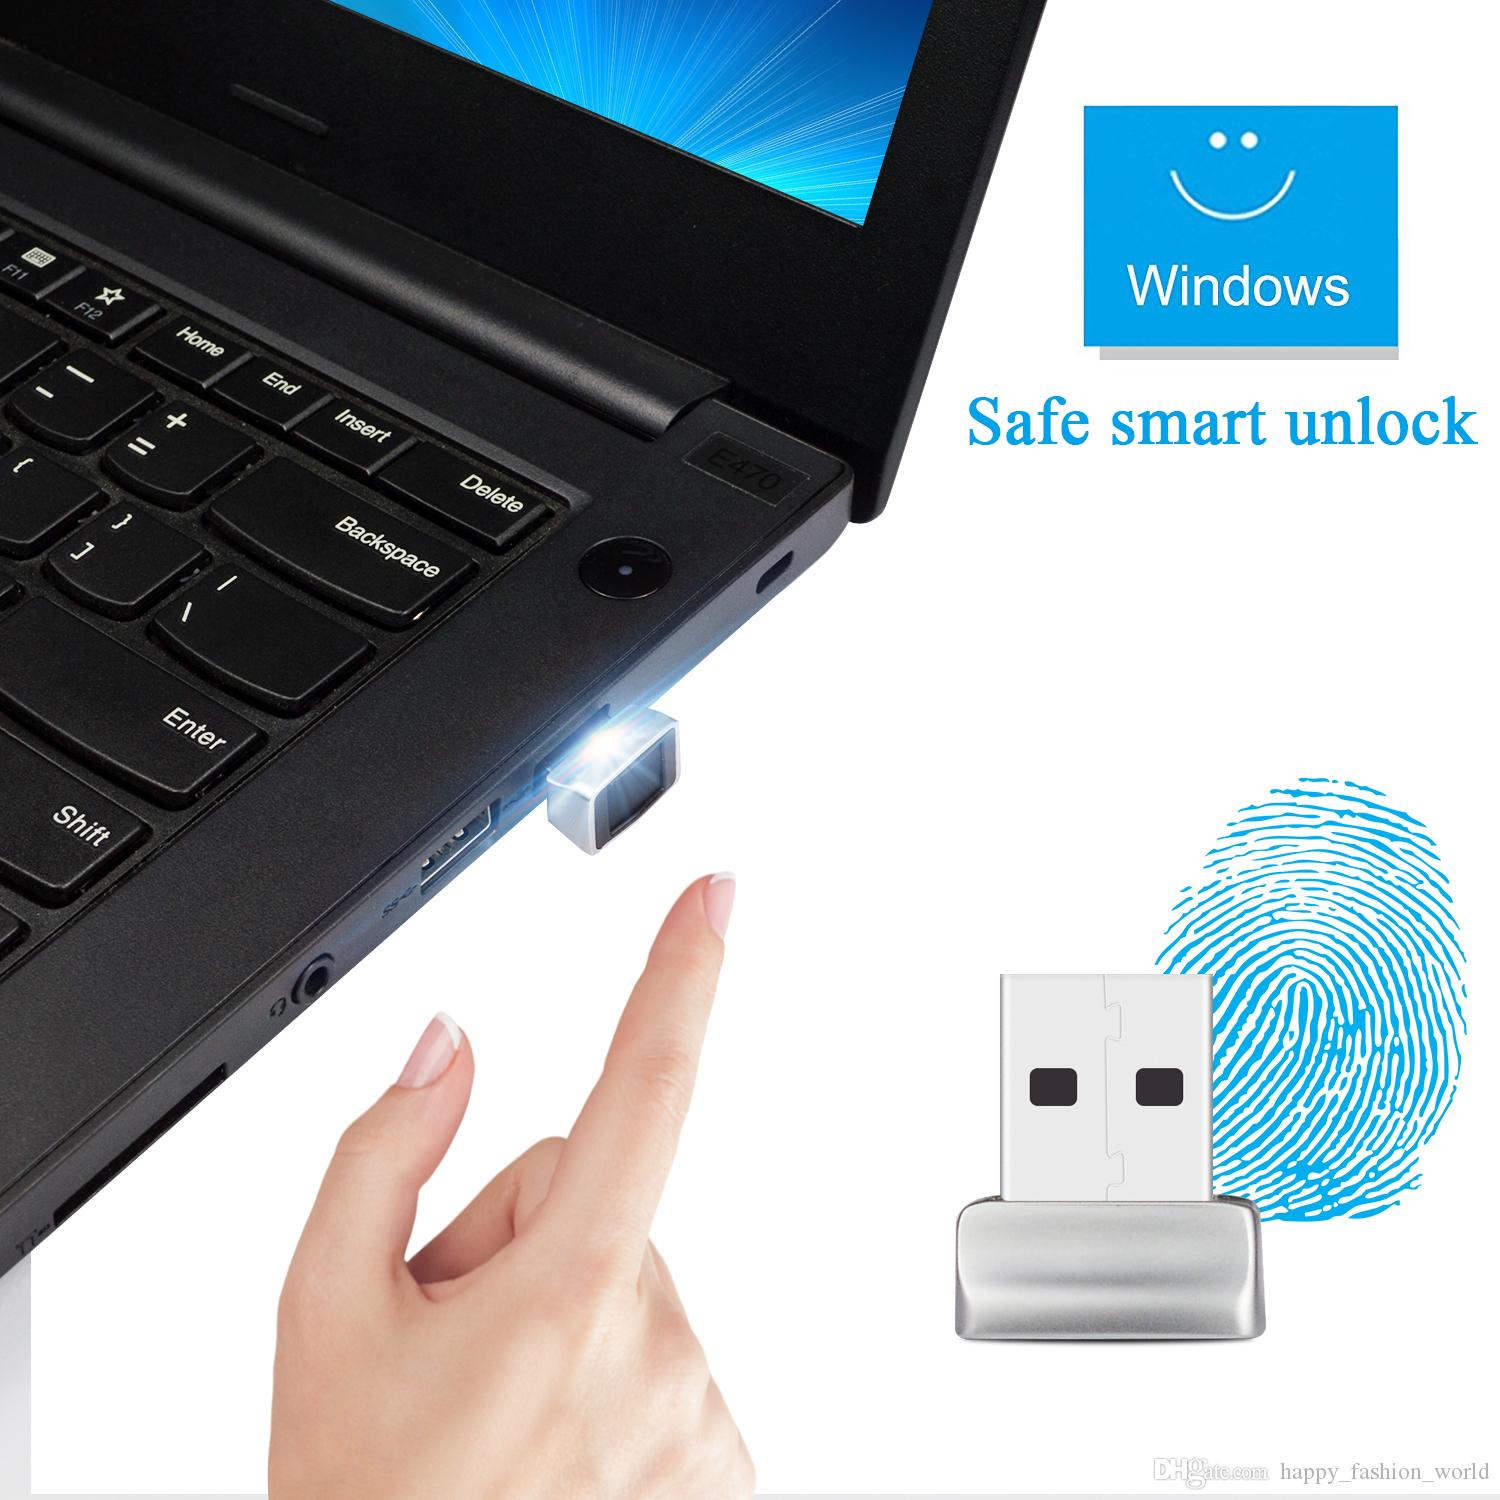 Usb Fingerprint Reader Windows 7 8 10 Hello Biometric Fingerprint Scanner Pc Dongle For Password Free File Encryption Convenience Compatib Best Pc Components Buy Computer Components From Happy Fashion World 14 07 Dhgate Com